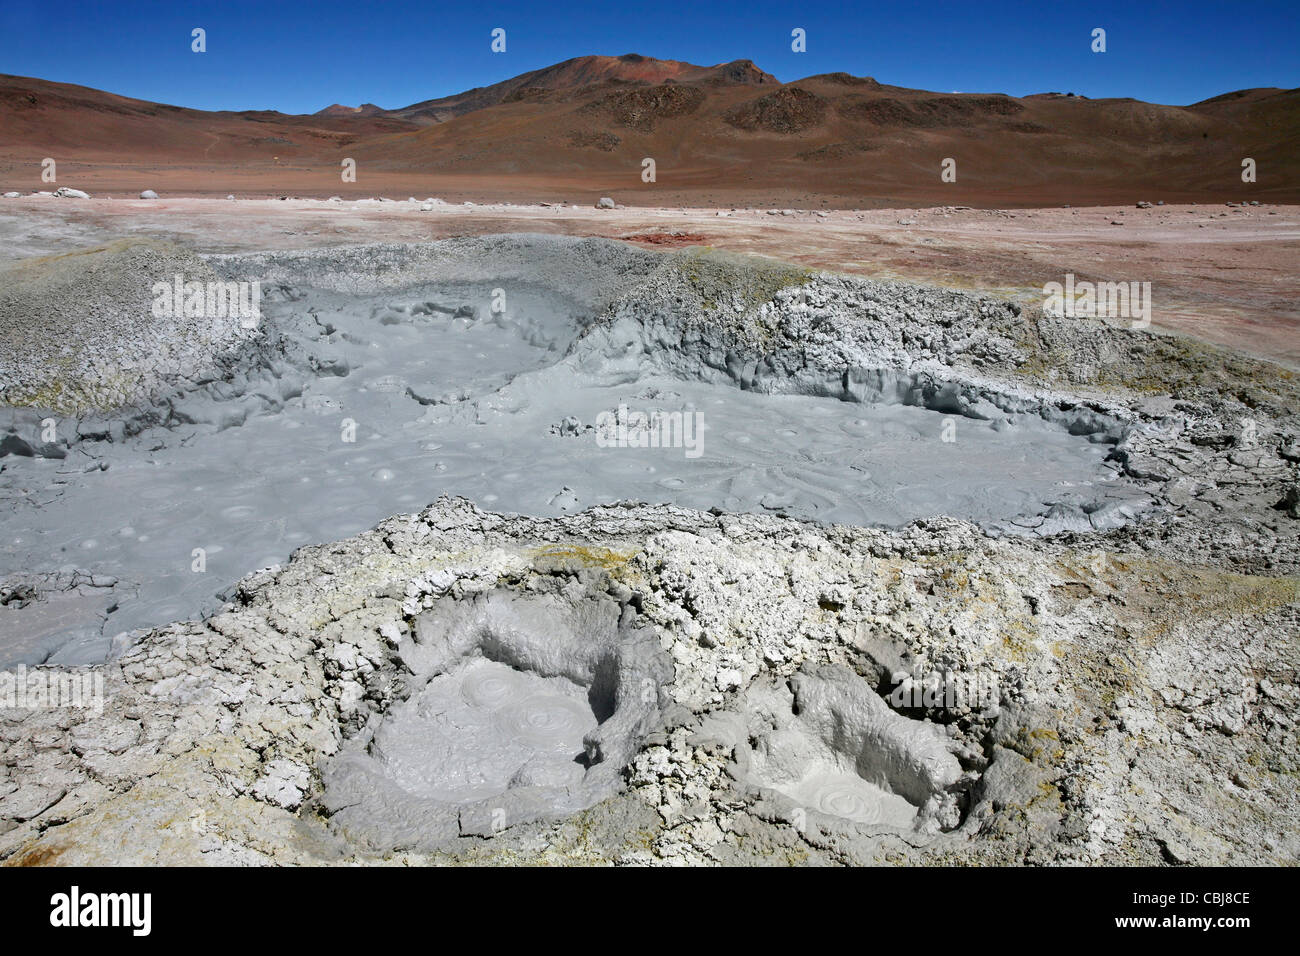 Boiling mud pools and hot springs in geothermal volcanic field Sol de Mañana, Altiplano, Bolivia - Stock Image